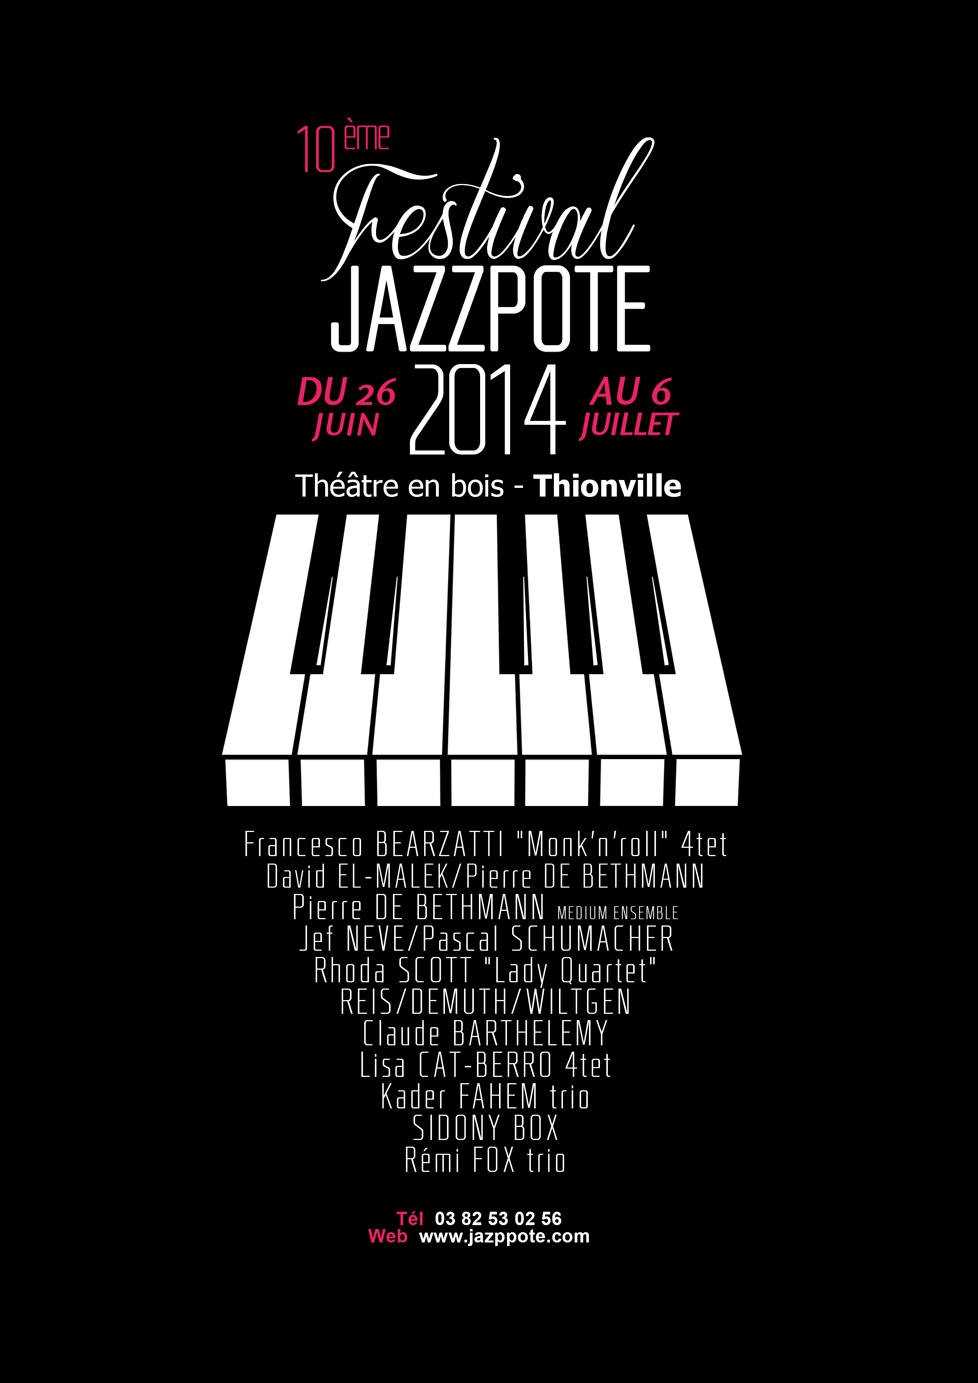 Jazzpote 2014